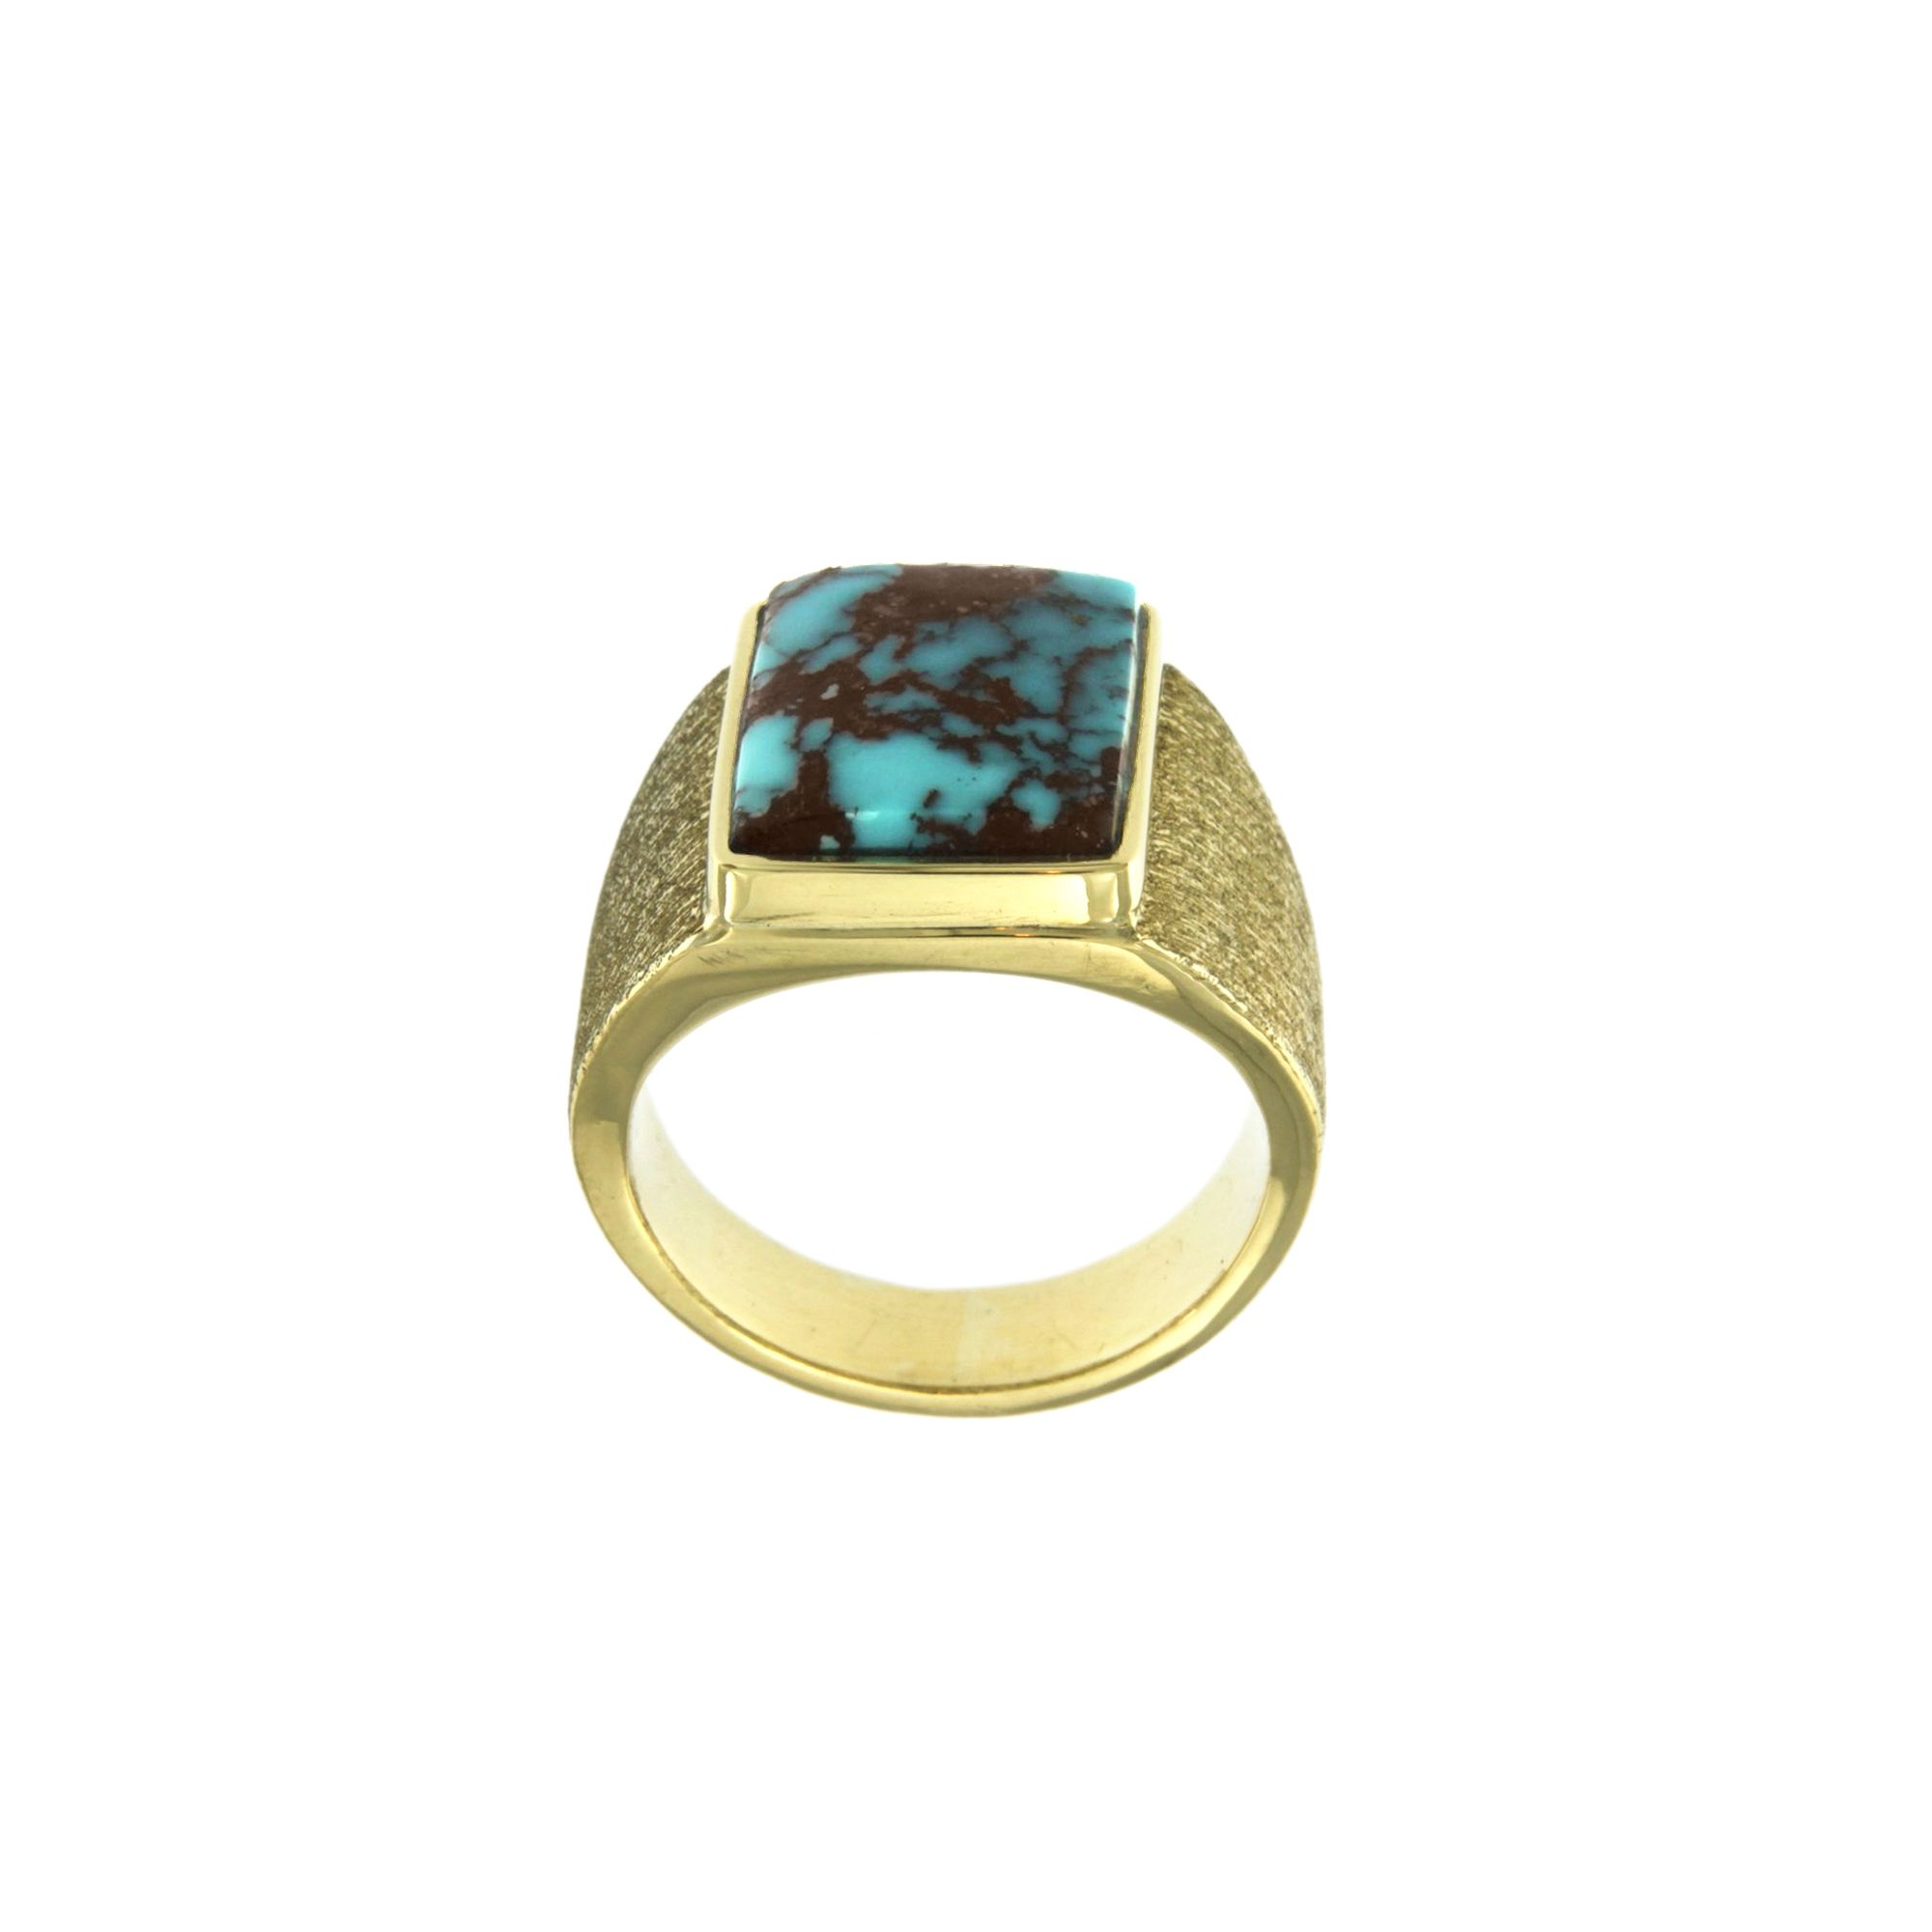 #Bisbee #Turquoise #Ring in #18k #Yellow #Gold Anyone who knows #turquoise knows about #Bisbee This isn't your typical #turquoise . This prized #specimen shows off its striking #blue color and its #famous #chocolate #matrix